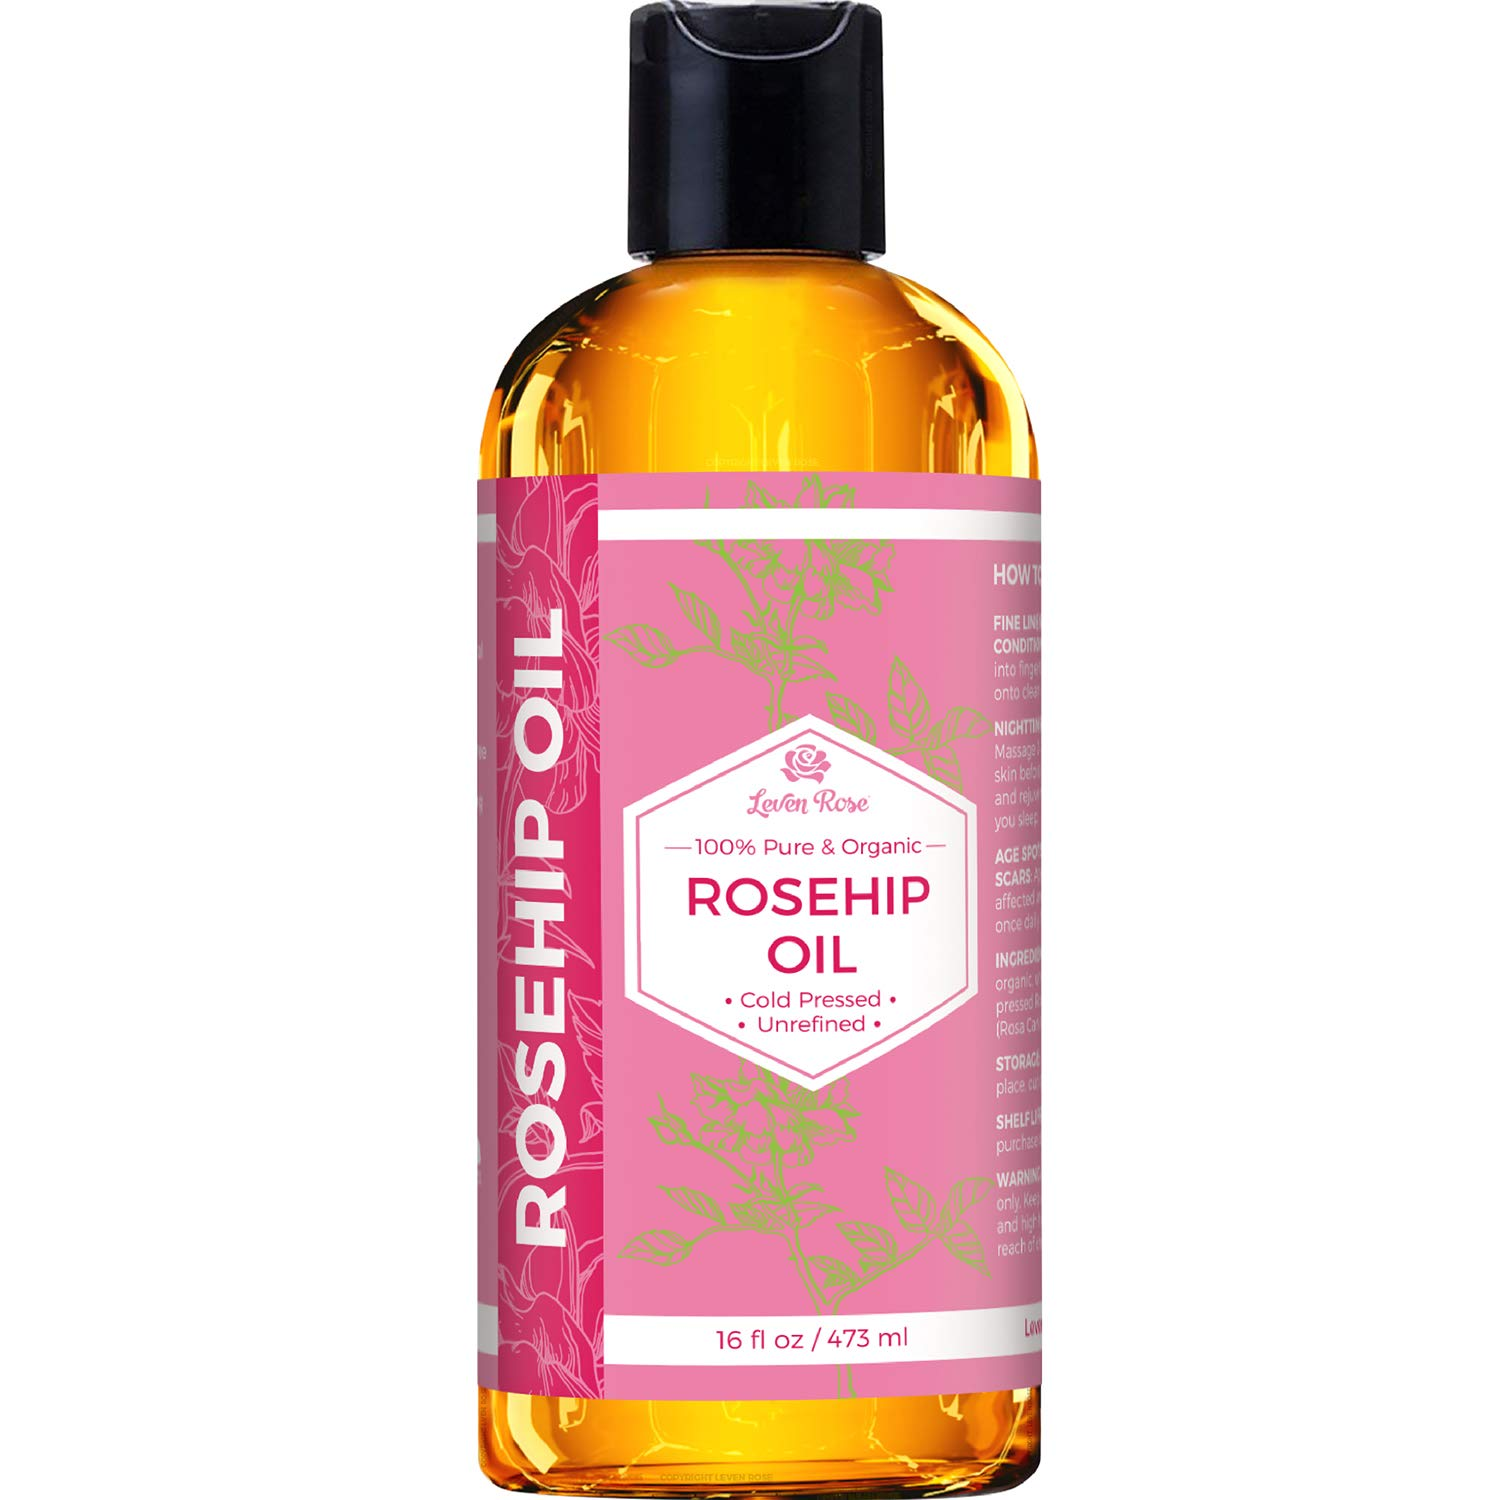 Rosehip Seed Oil by Leven Rose, 100% Pure Organic Unrefined Cold Pressed Anti Aging Moisturizer for Hair Skin & Nails (16 oz)